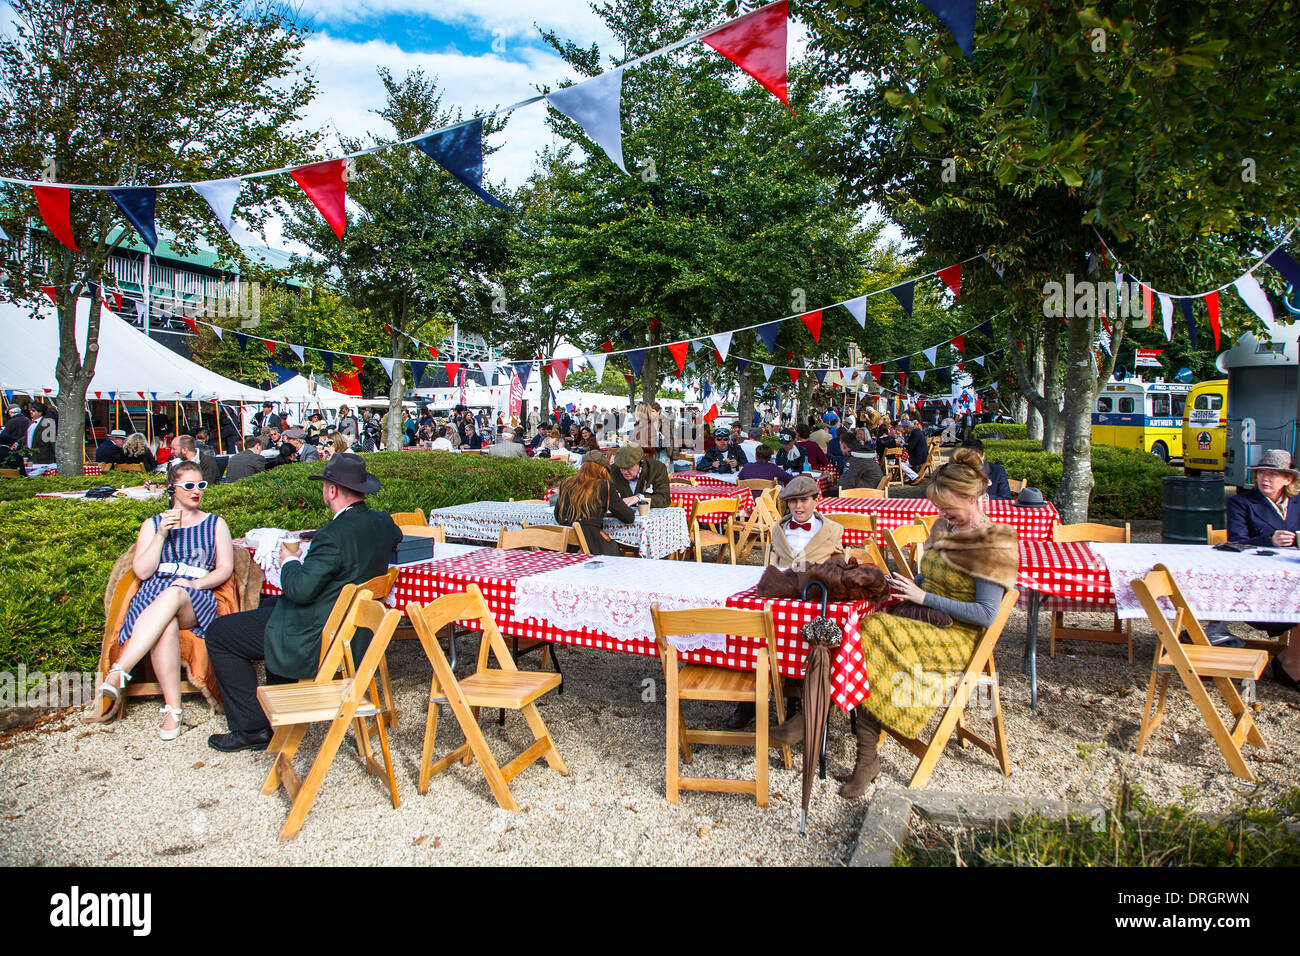 Cafe eingestellt am Goodwood Revival 2013, West Sussex, UK Stockbild